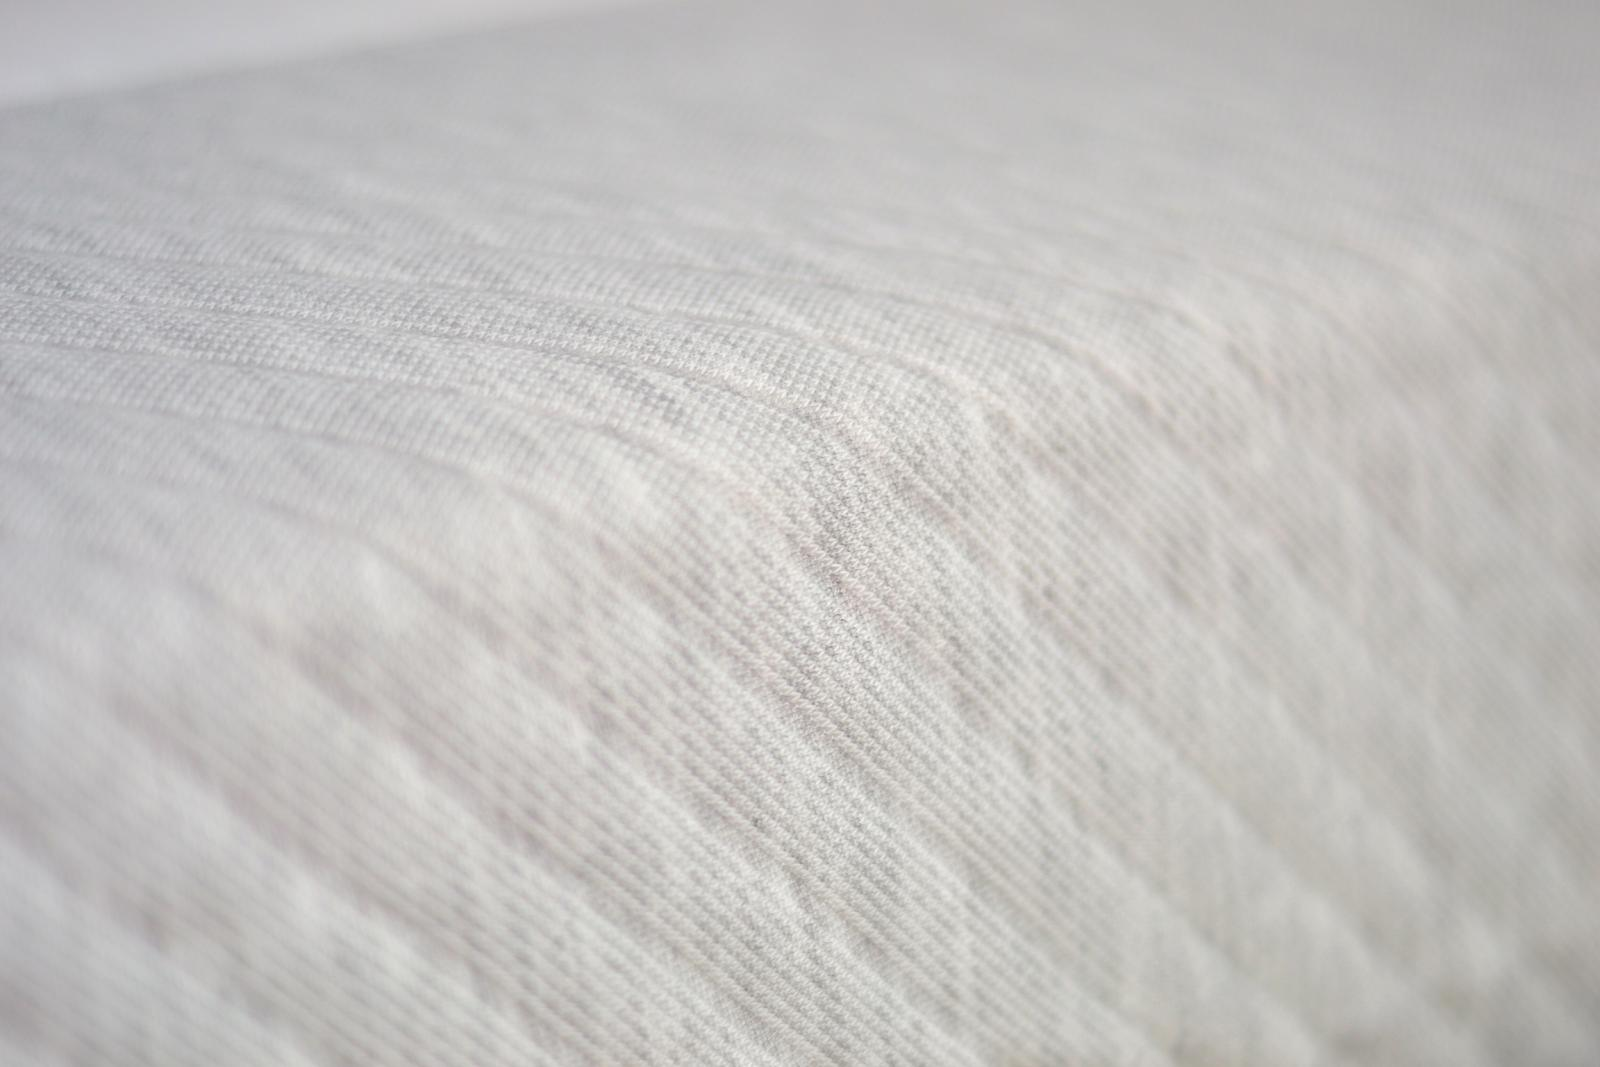 leesa-mattress-close-up